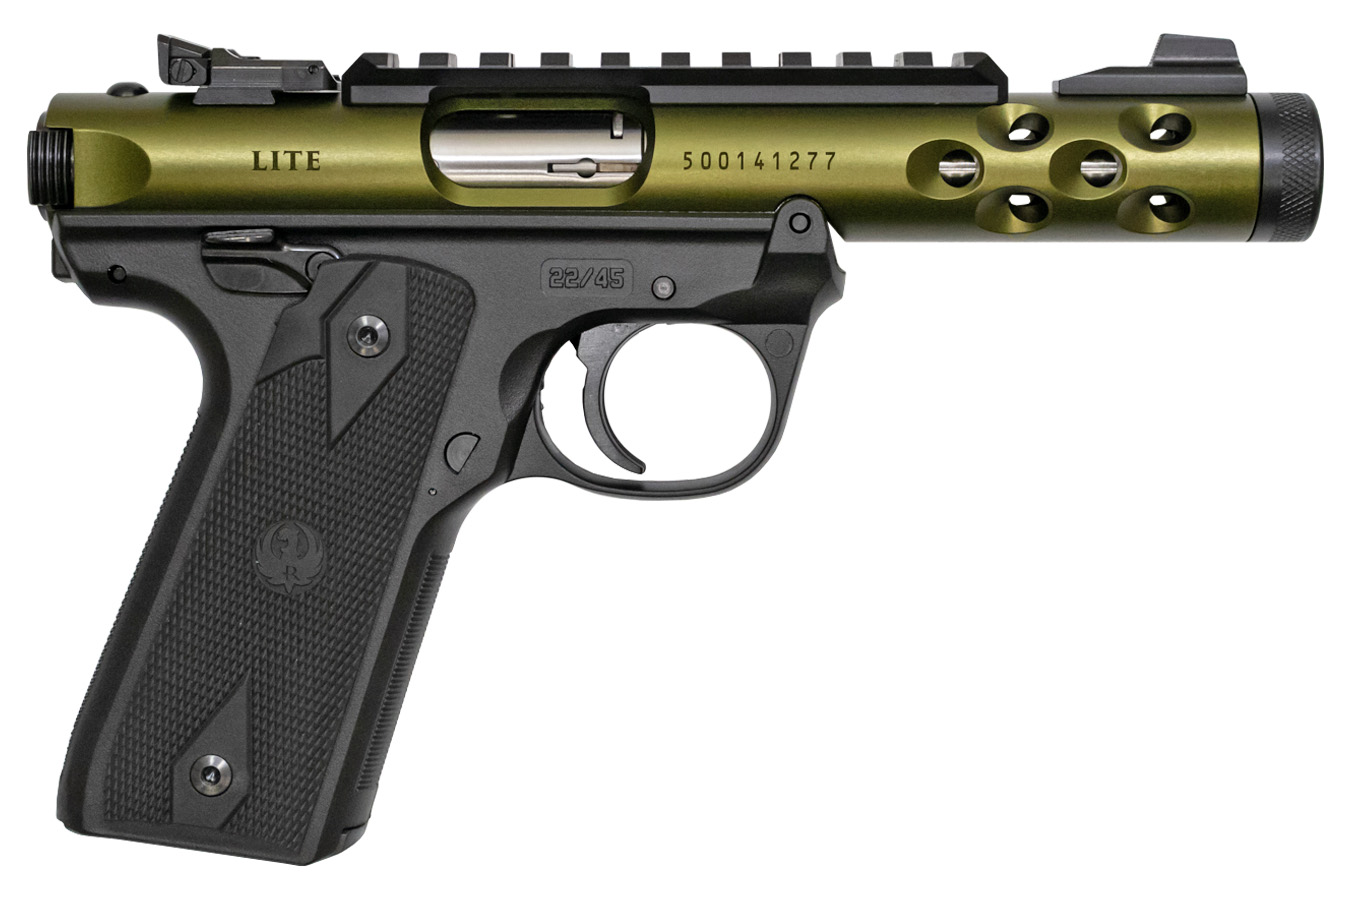 No. 20 Best Selling: RUGER MARK IV 22/45 LITE 22 LR GREEN ANODIZED